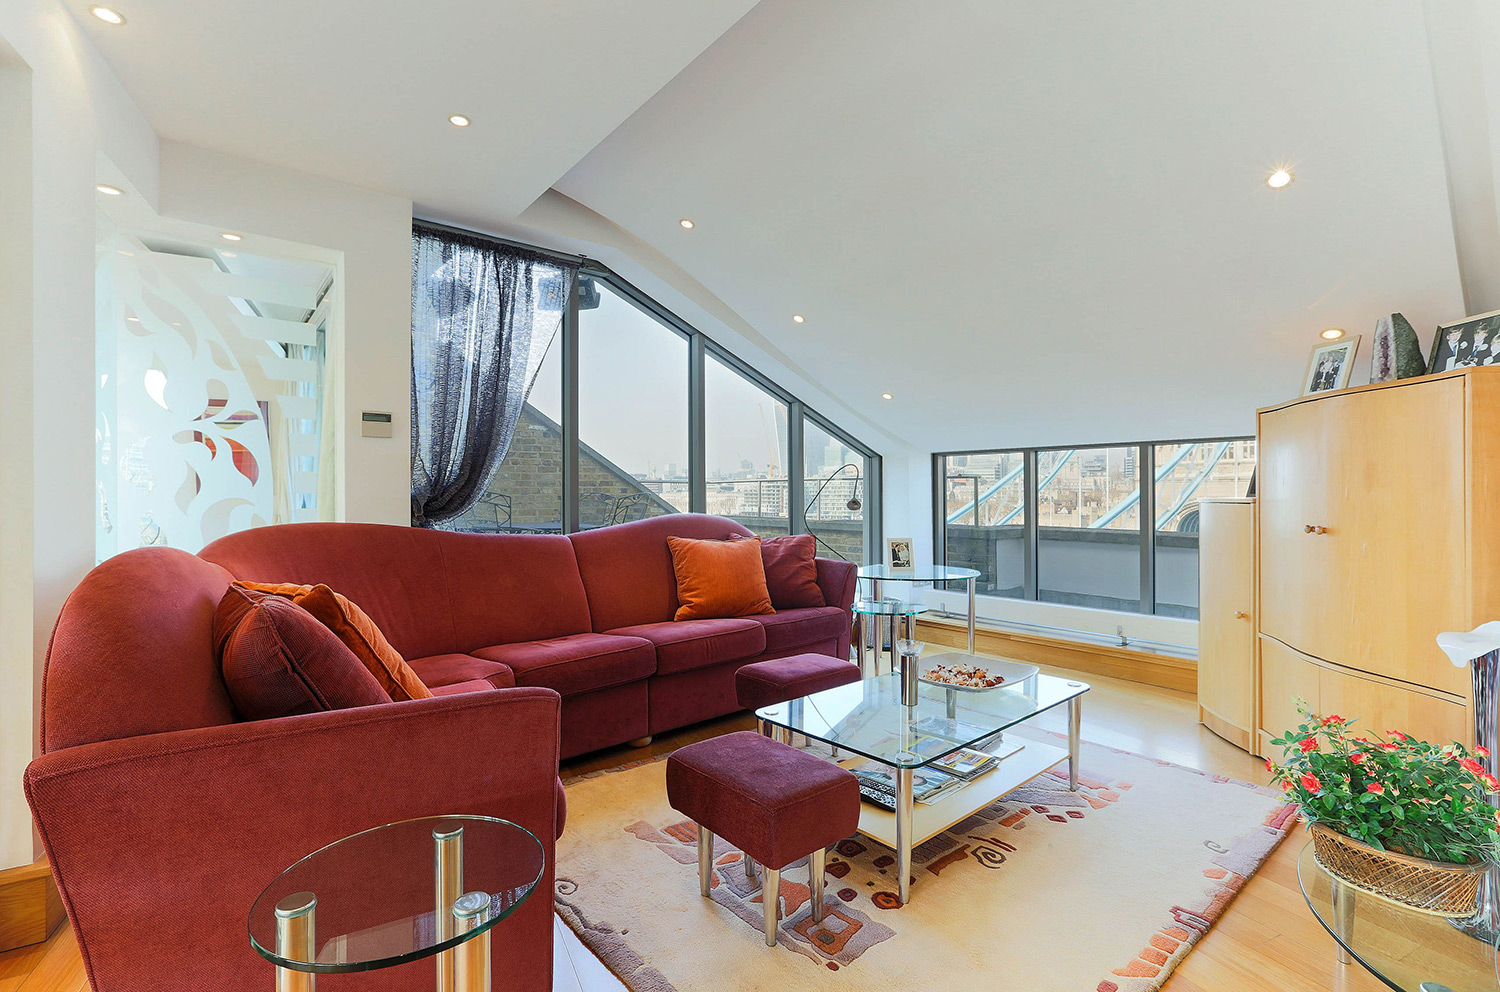 Interior views of The High Command penthouse in London